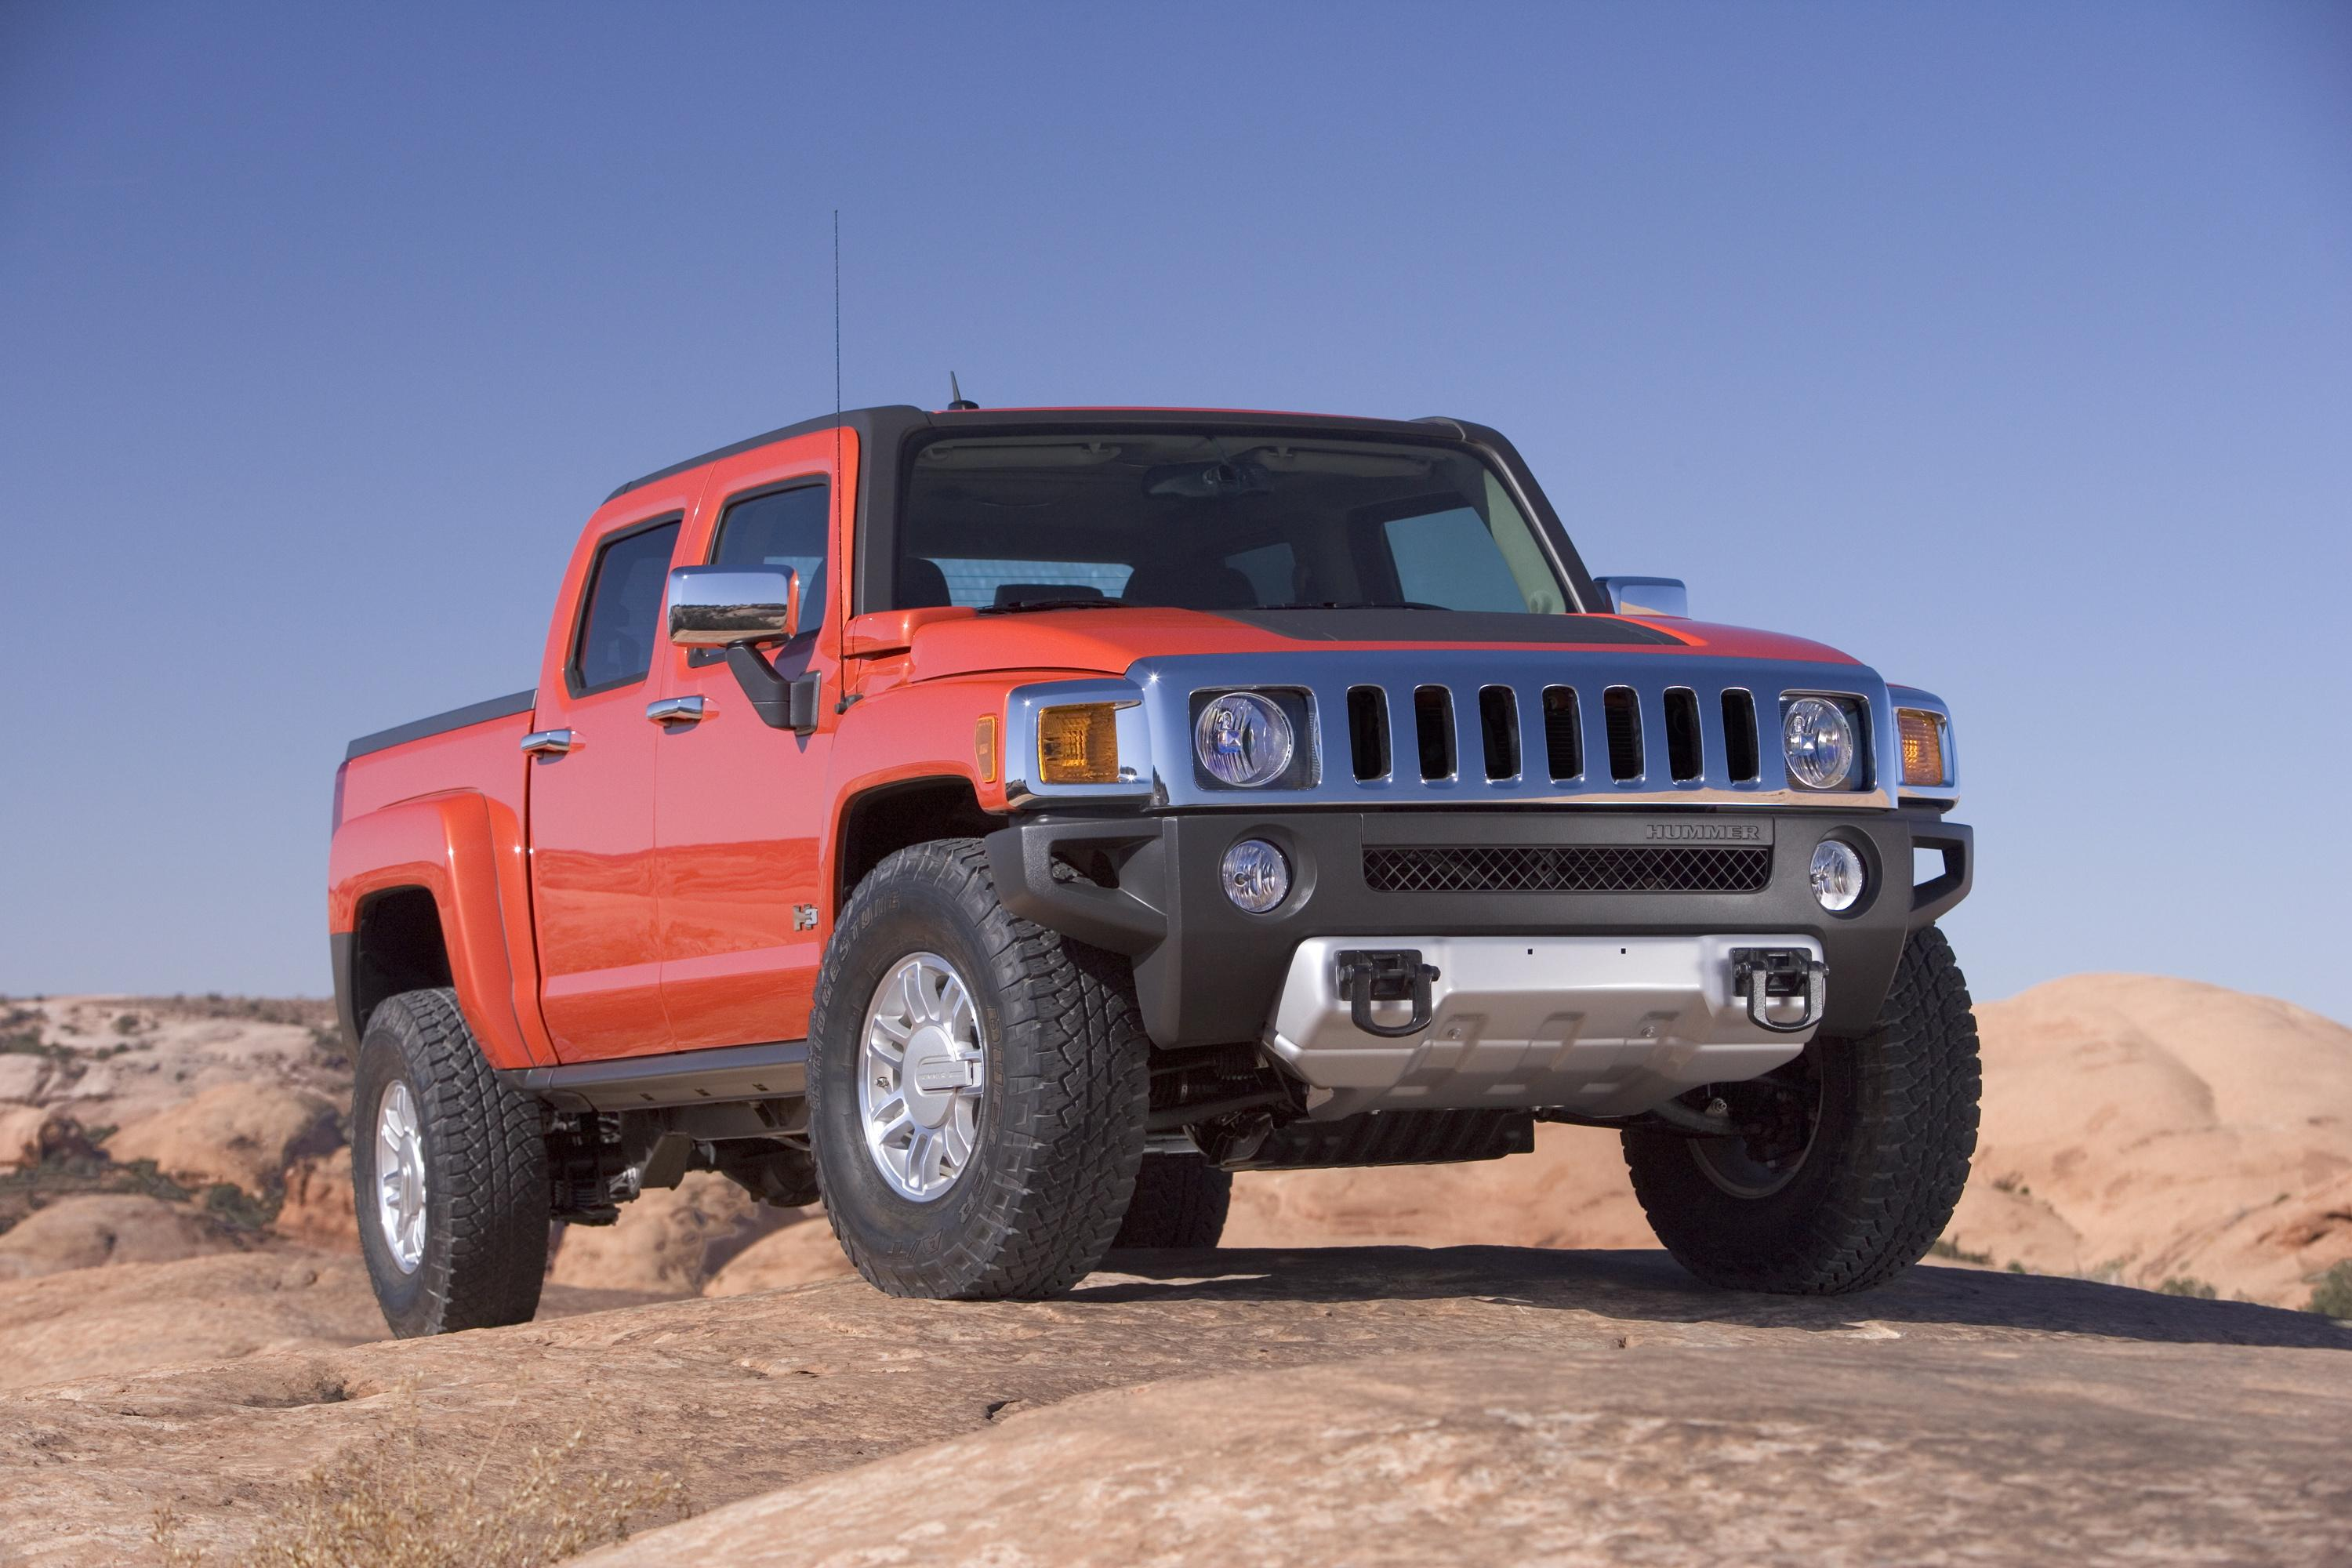 2009 HUMMER H3T Prices Announced | Top Speed